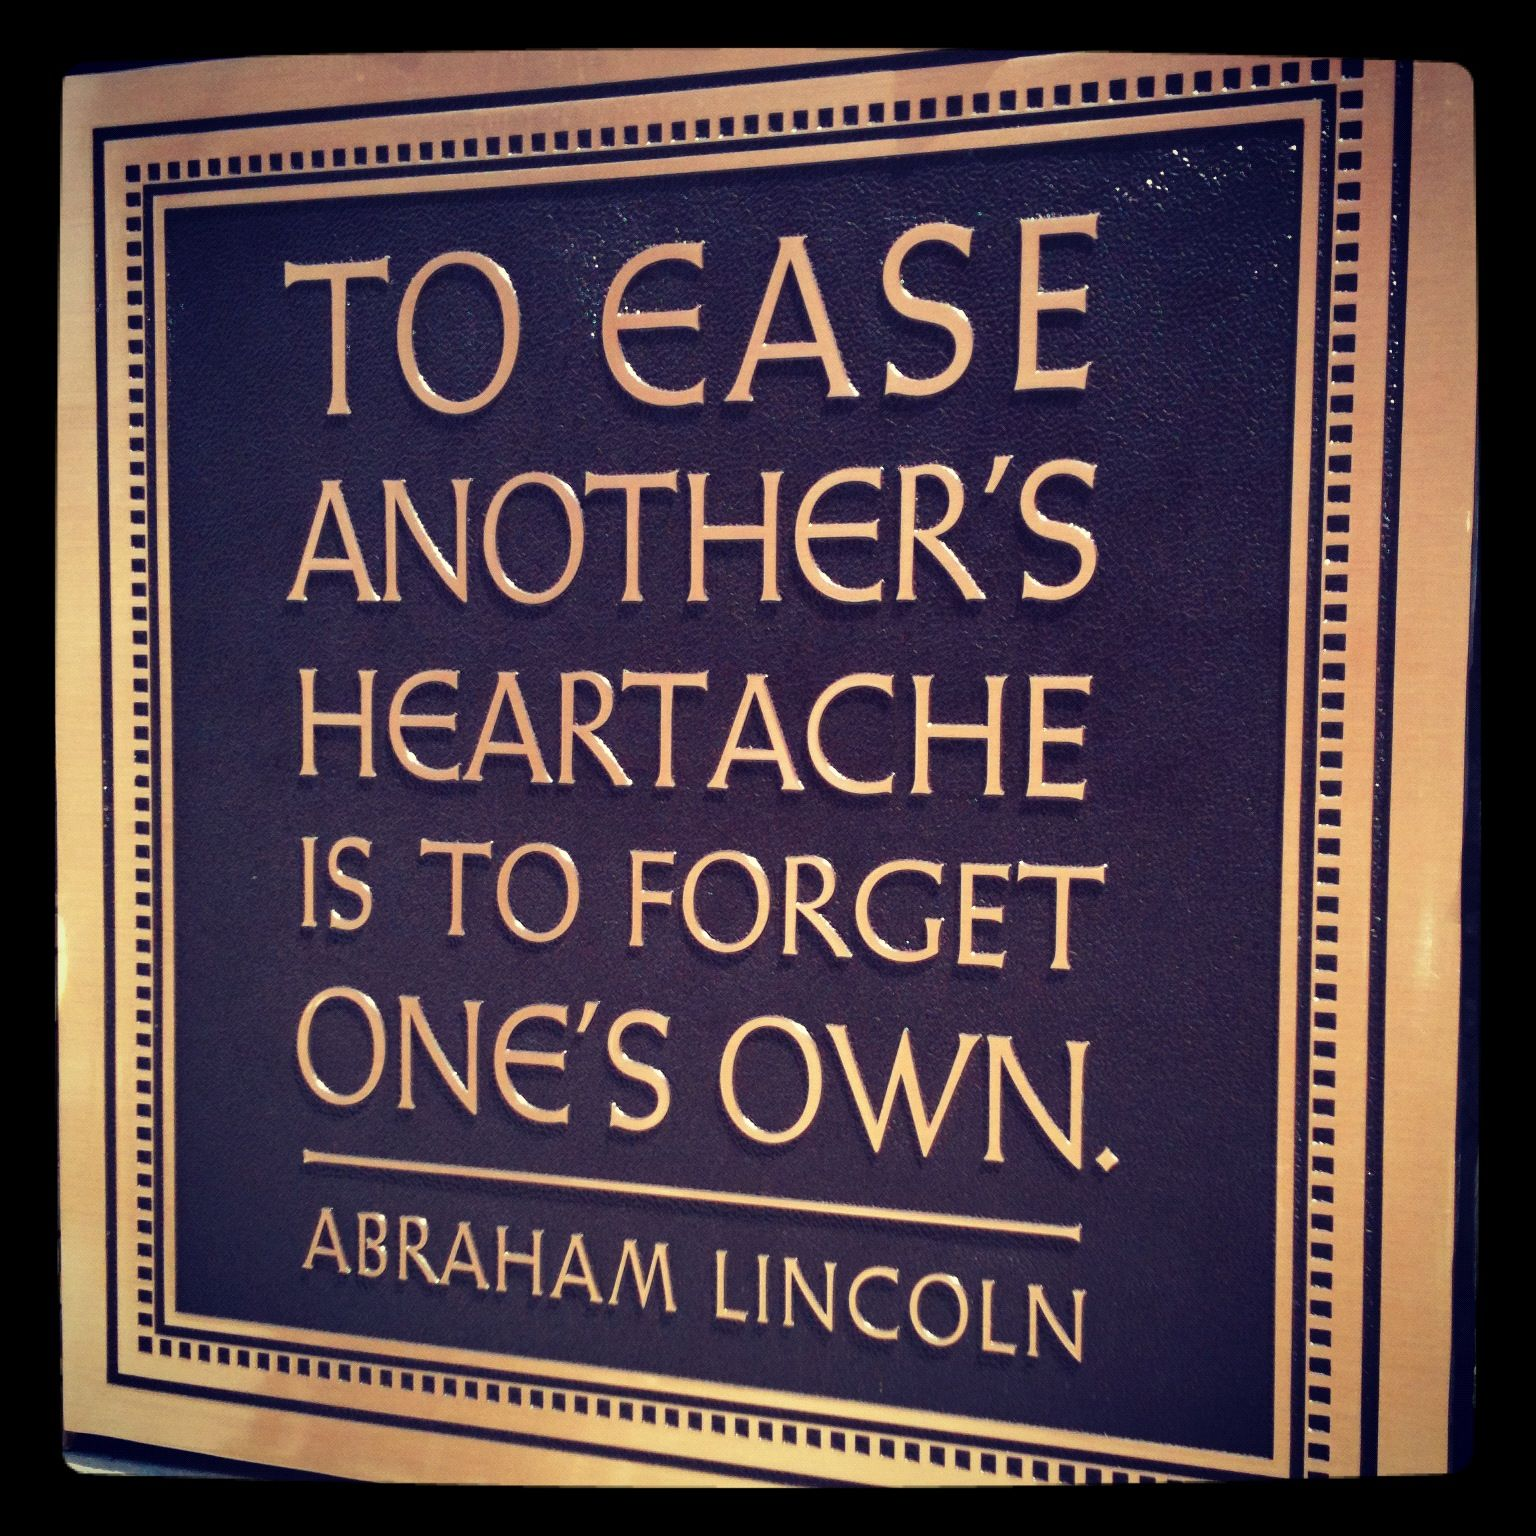 Quotes About Uplifting One Another: To Ease Another's Heartache Is To Forget One's Own